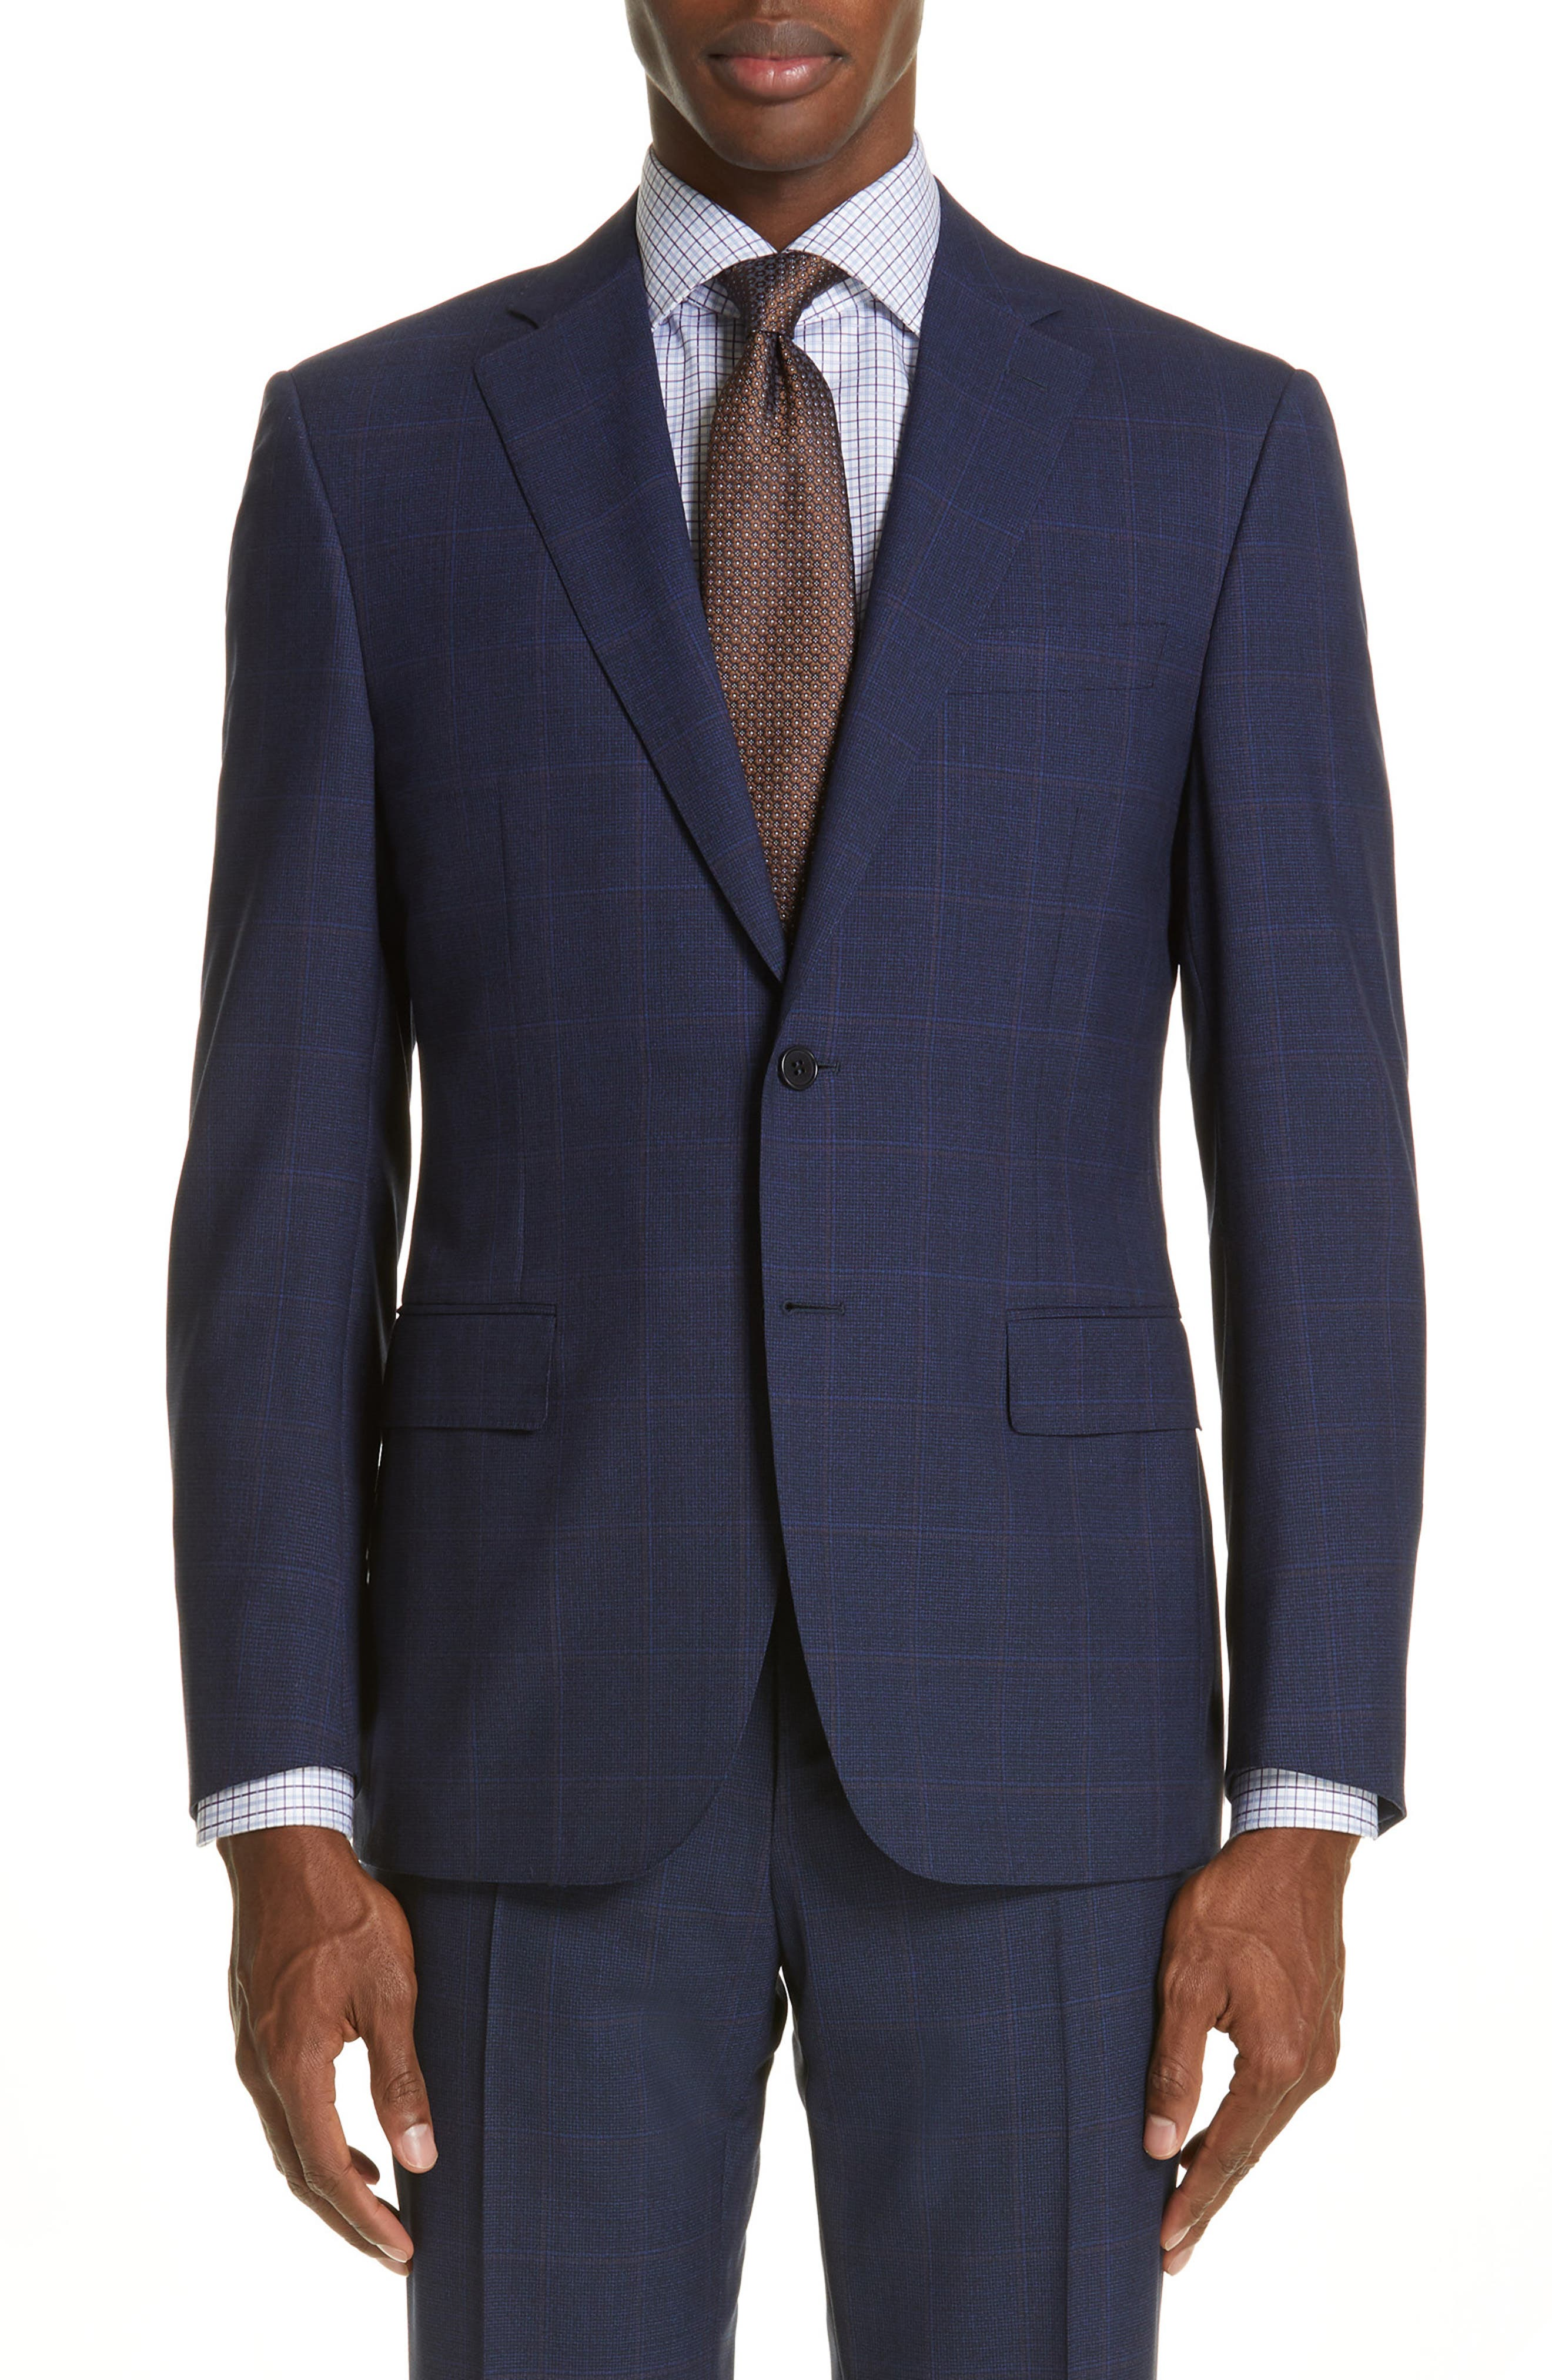 CANALI, Siena Soft Classic Fit Plaid Wool Suit, Alternate thumbnail 5, color, NAVY